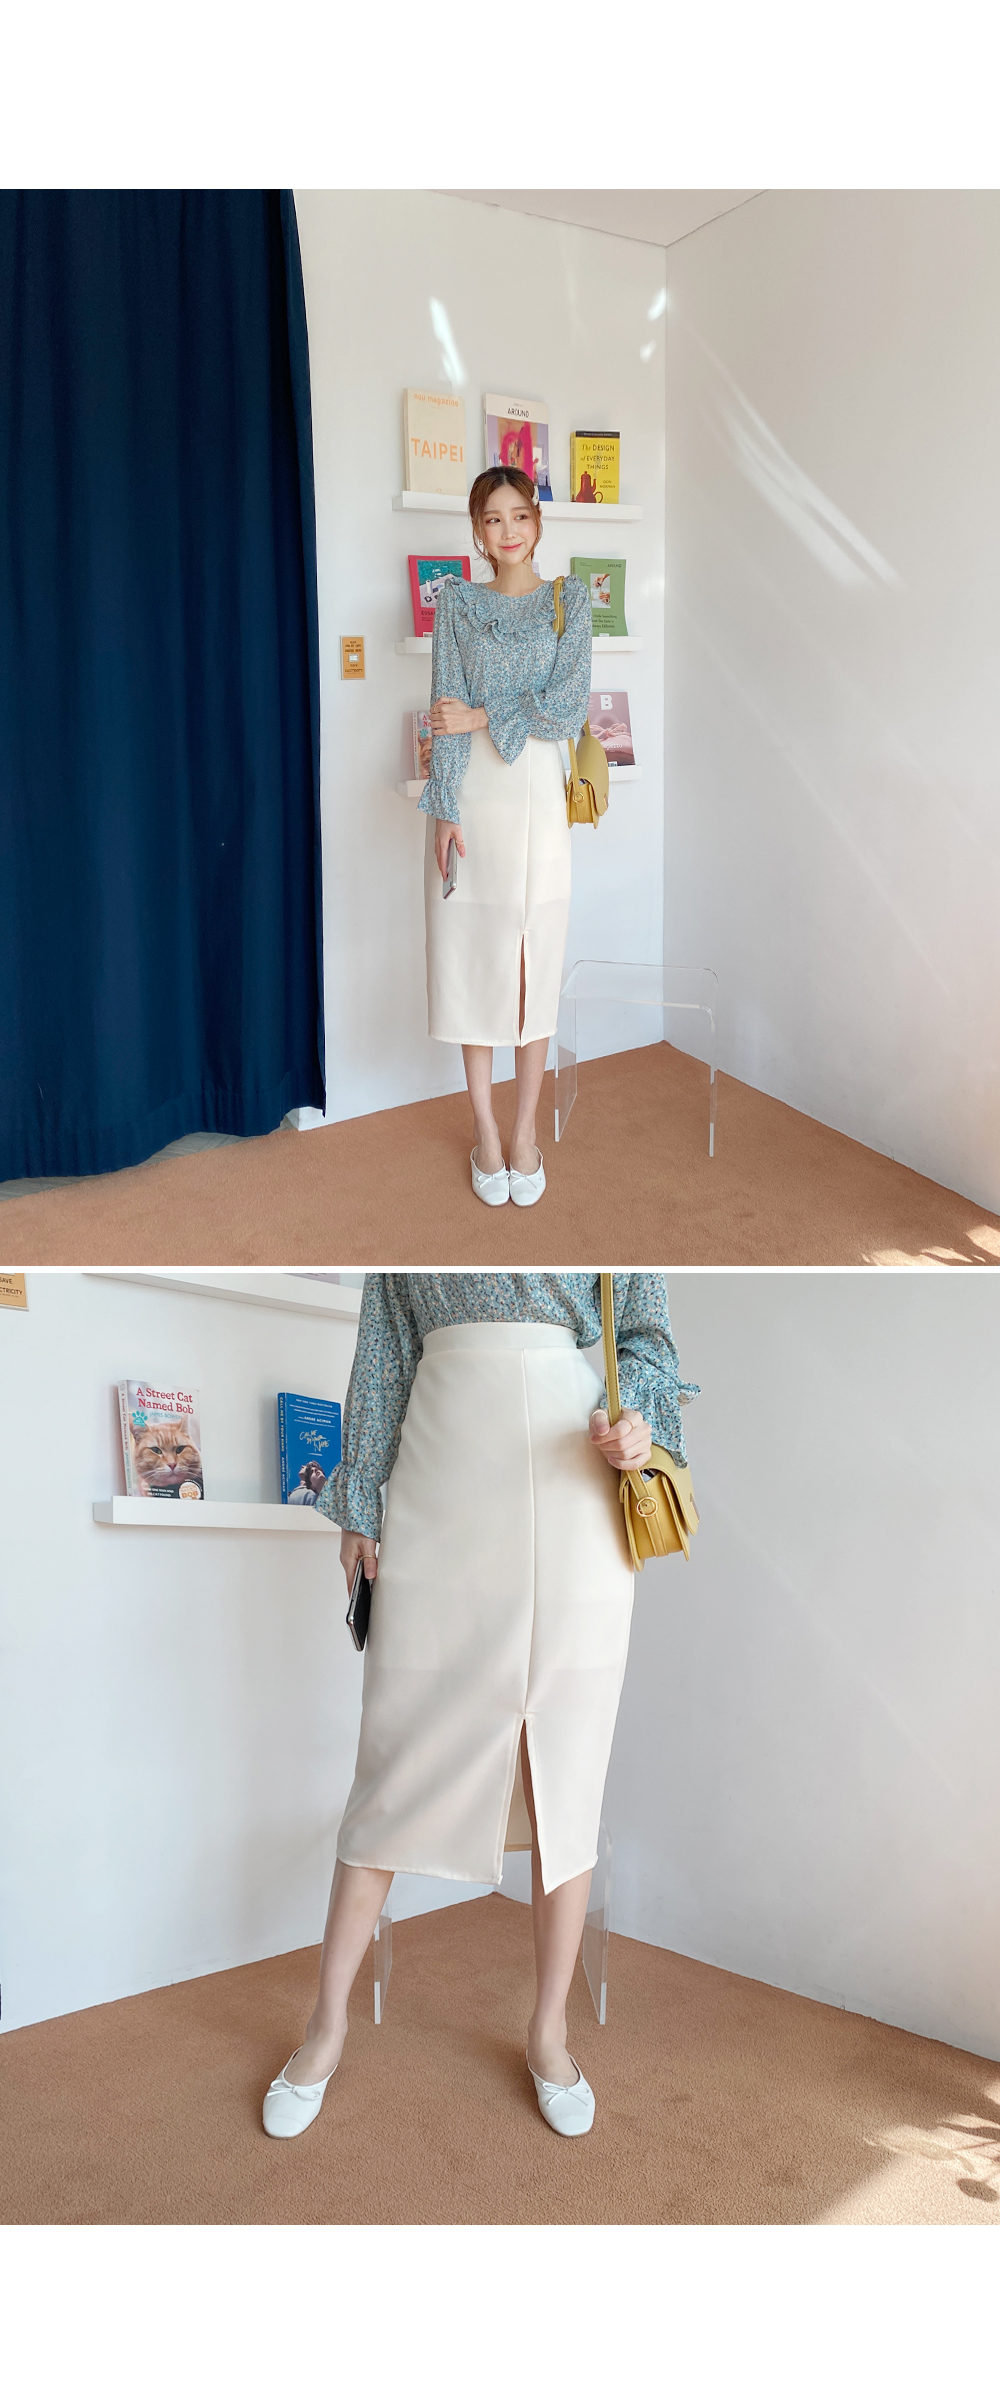 Suddenly coming up skirt